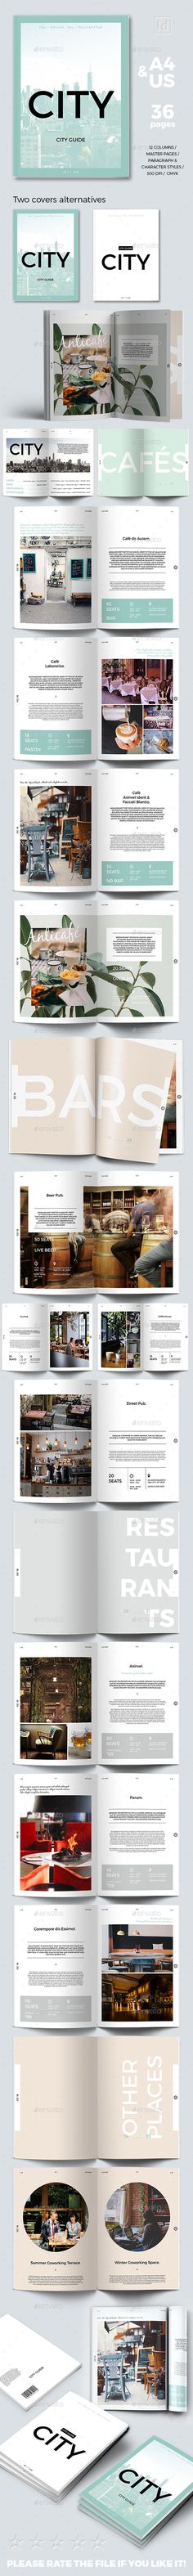 City Guide Template by porshy Live Preview This product includes: 36pp Indesign Document 2 sizes: A4 & US letter Compatible with Adobe Indesign CS4, CS5, CS5.5,